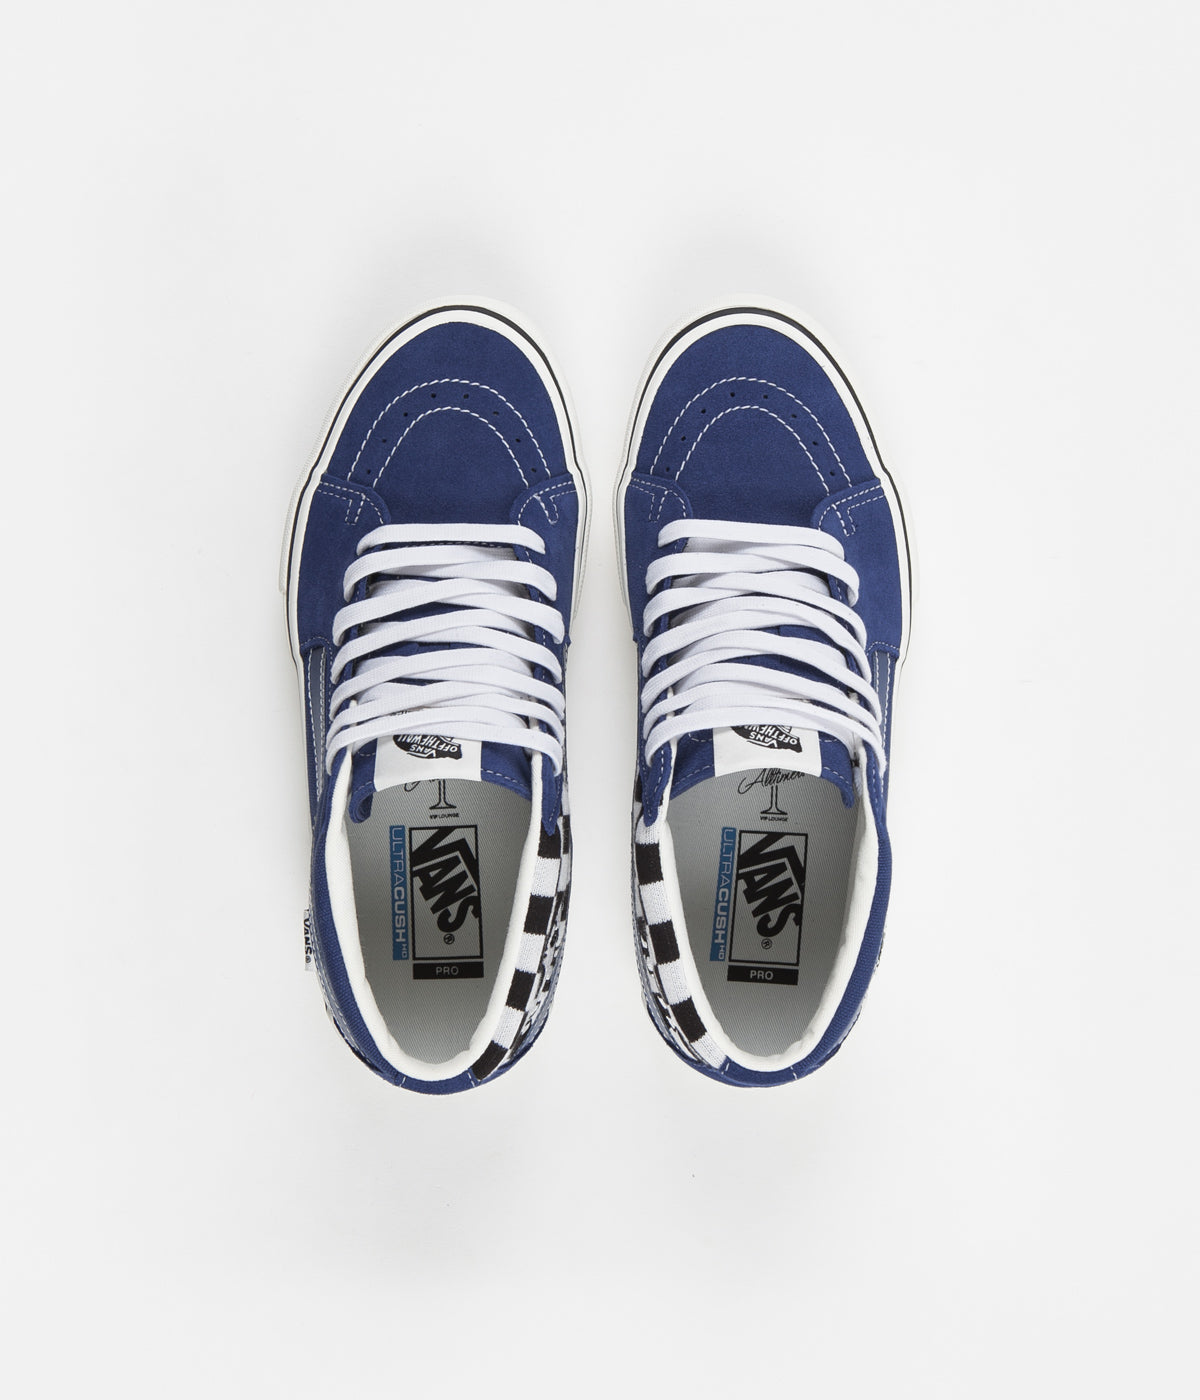 Vans x Alltimers Sk8-Mid Pro Shoes - True Navy / Classic White